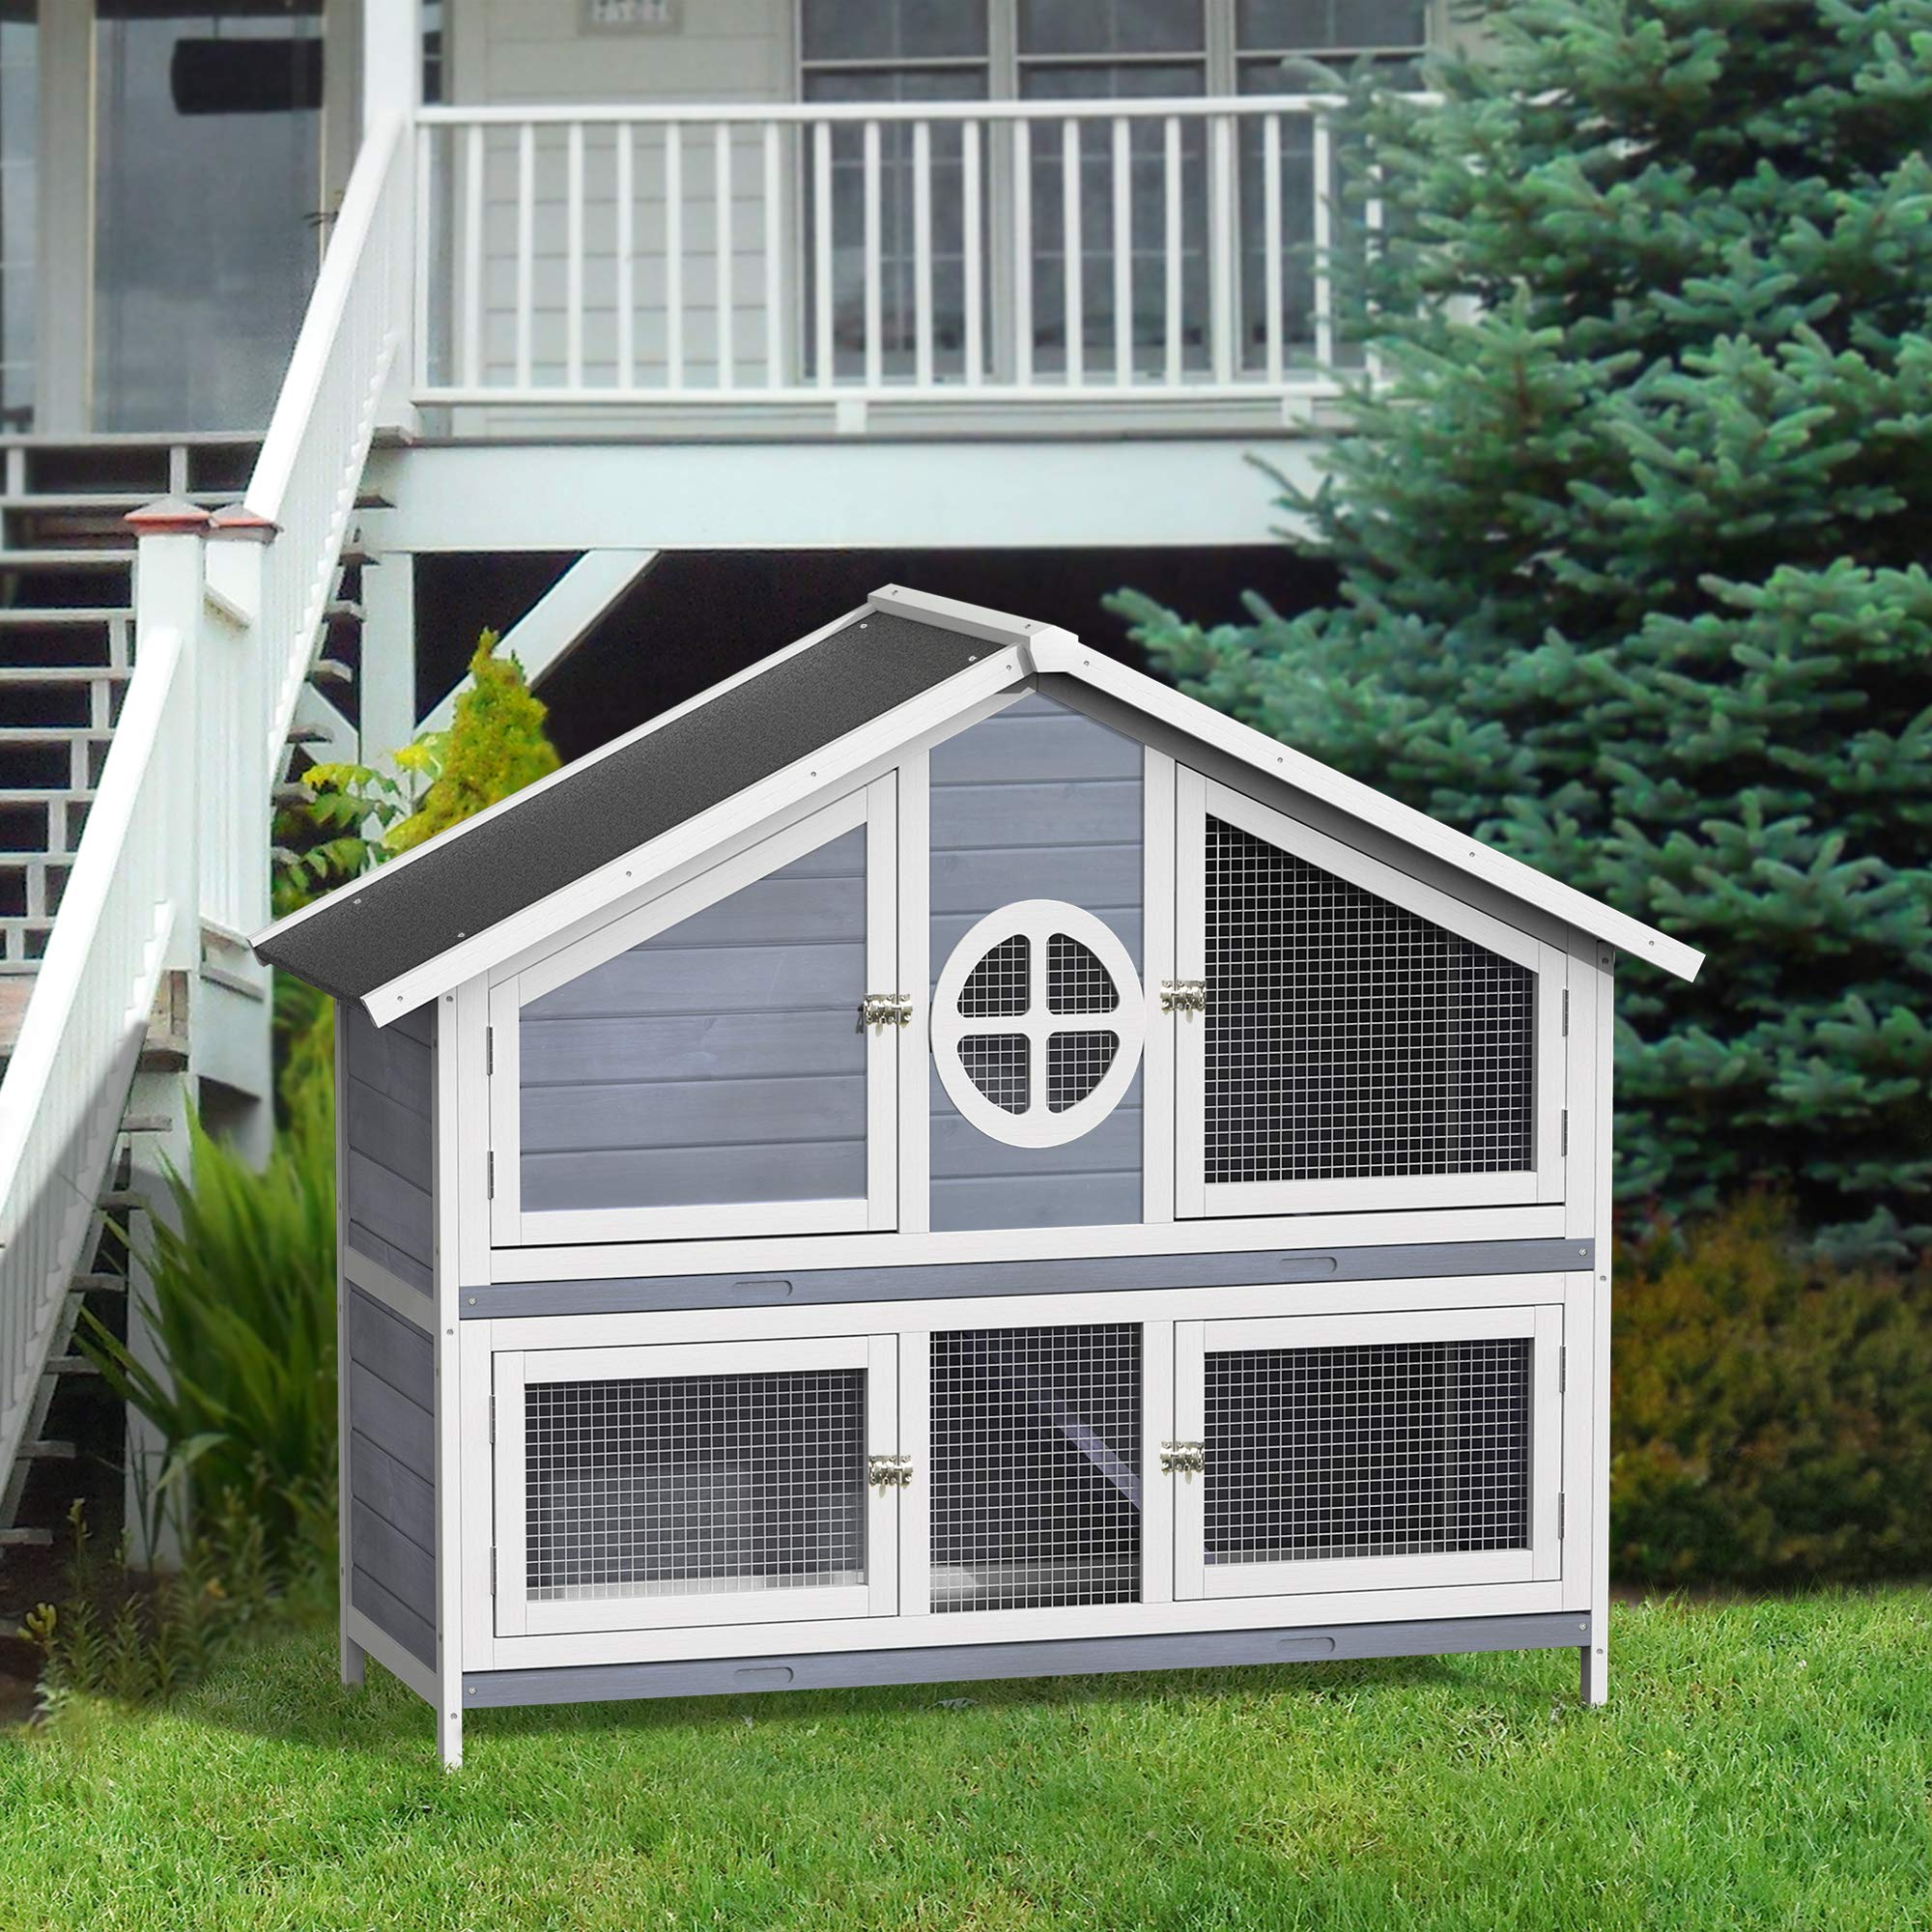 LZ LEISURE ZONE 50.2'' Rabbit Hutch Pet Bunny Cage Wood Small Animals House for Outdoor/Indoor Use (Grey+White) by LZ LEISURE ZONE